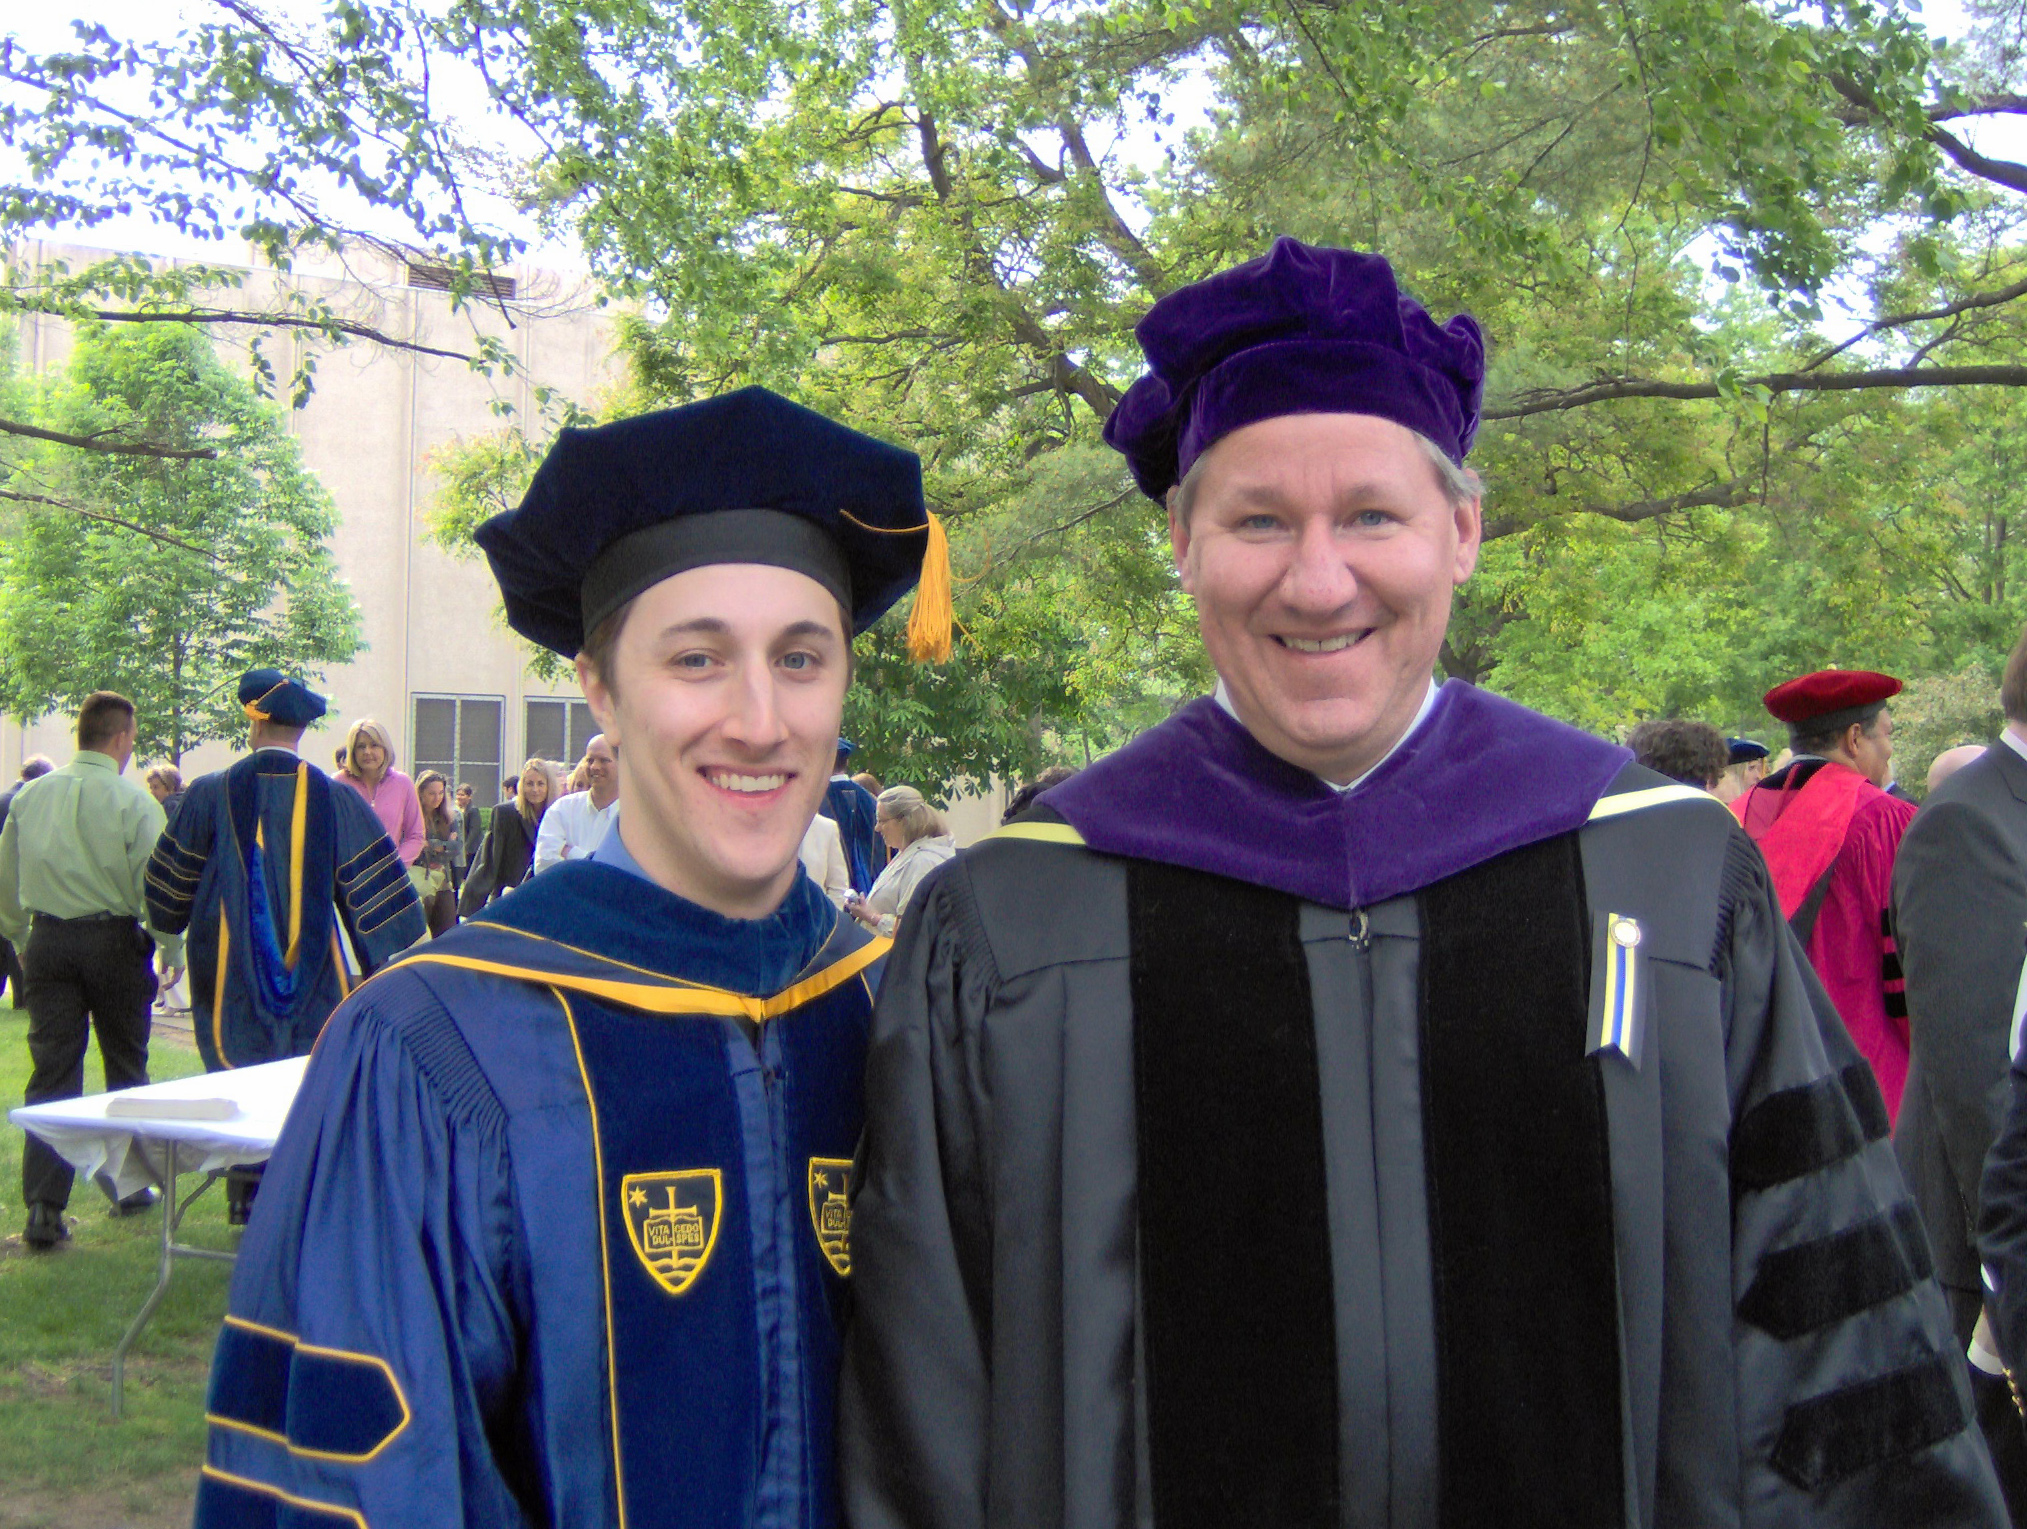 With John Nagle at the Notre Dame Law School Commencement, May 20, 2007